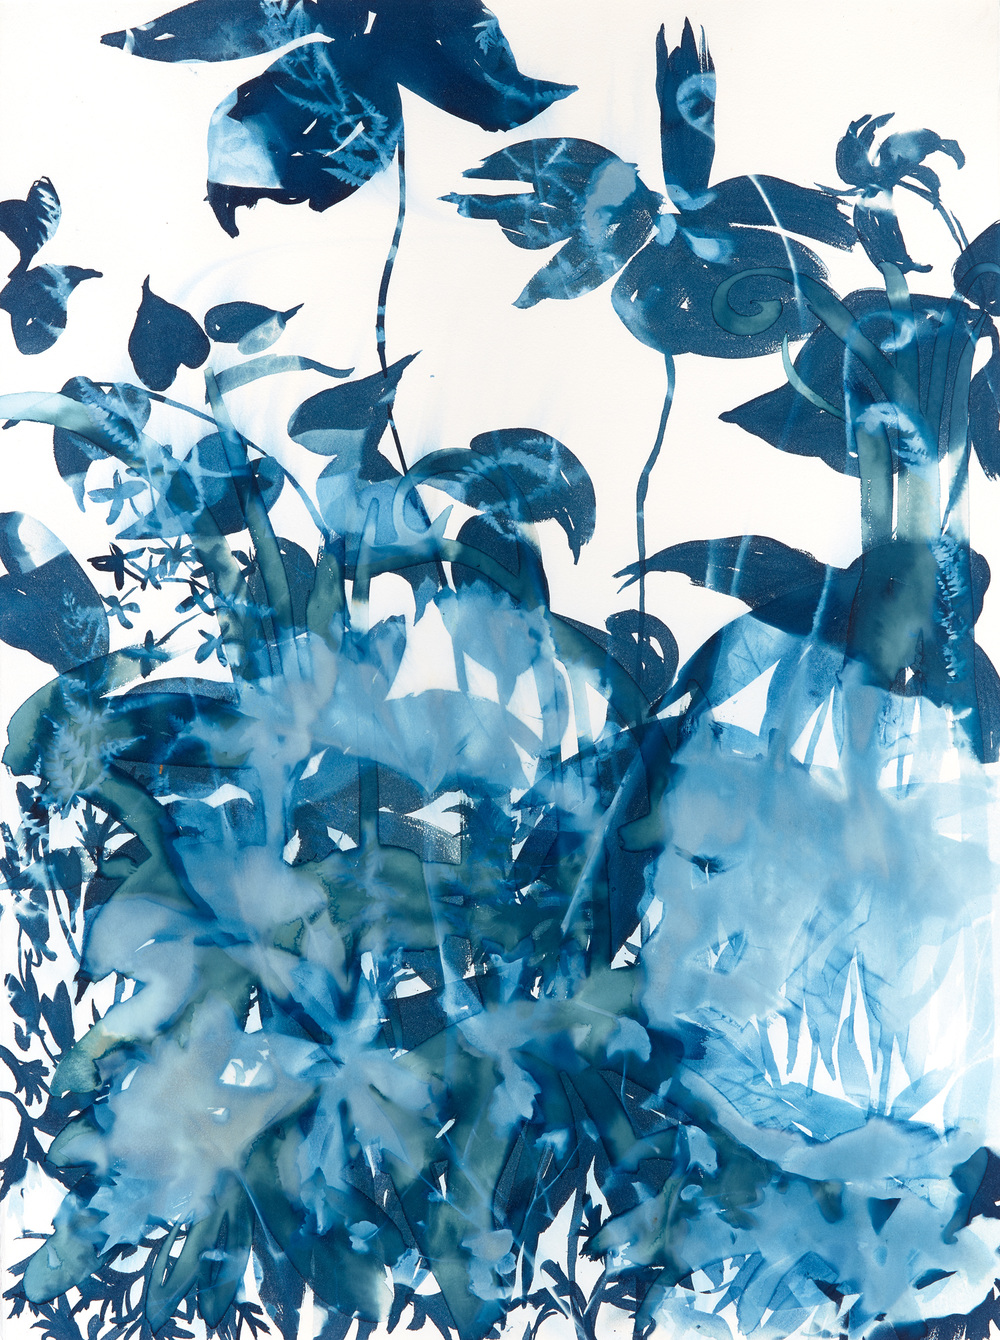 Cynthia MacCollum Botanica Wet Cyanotype Painting